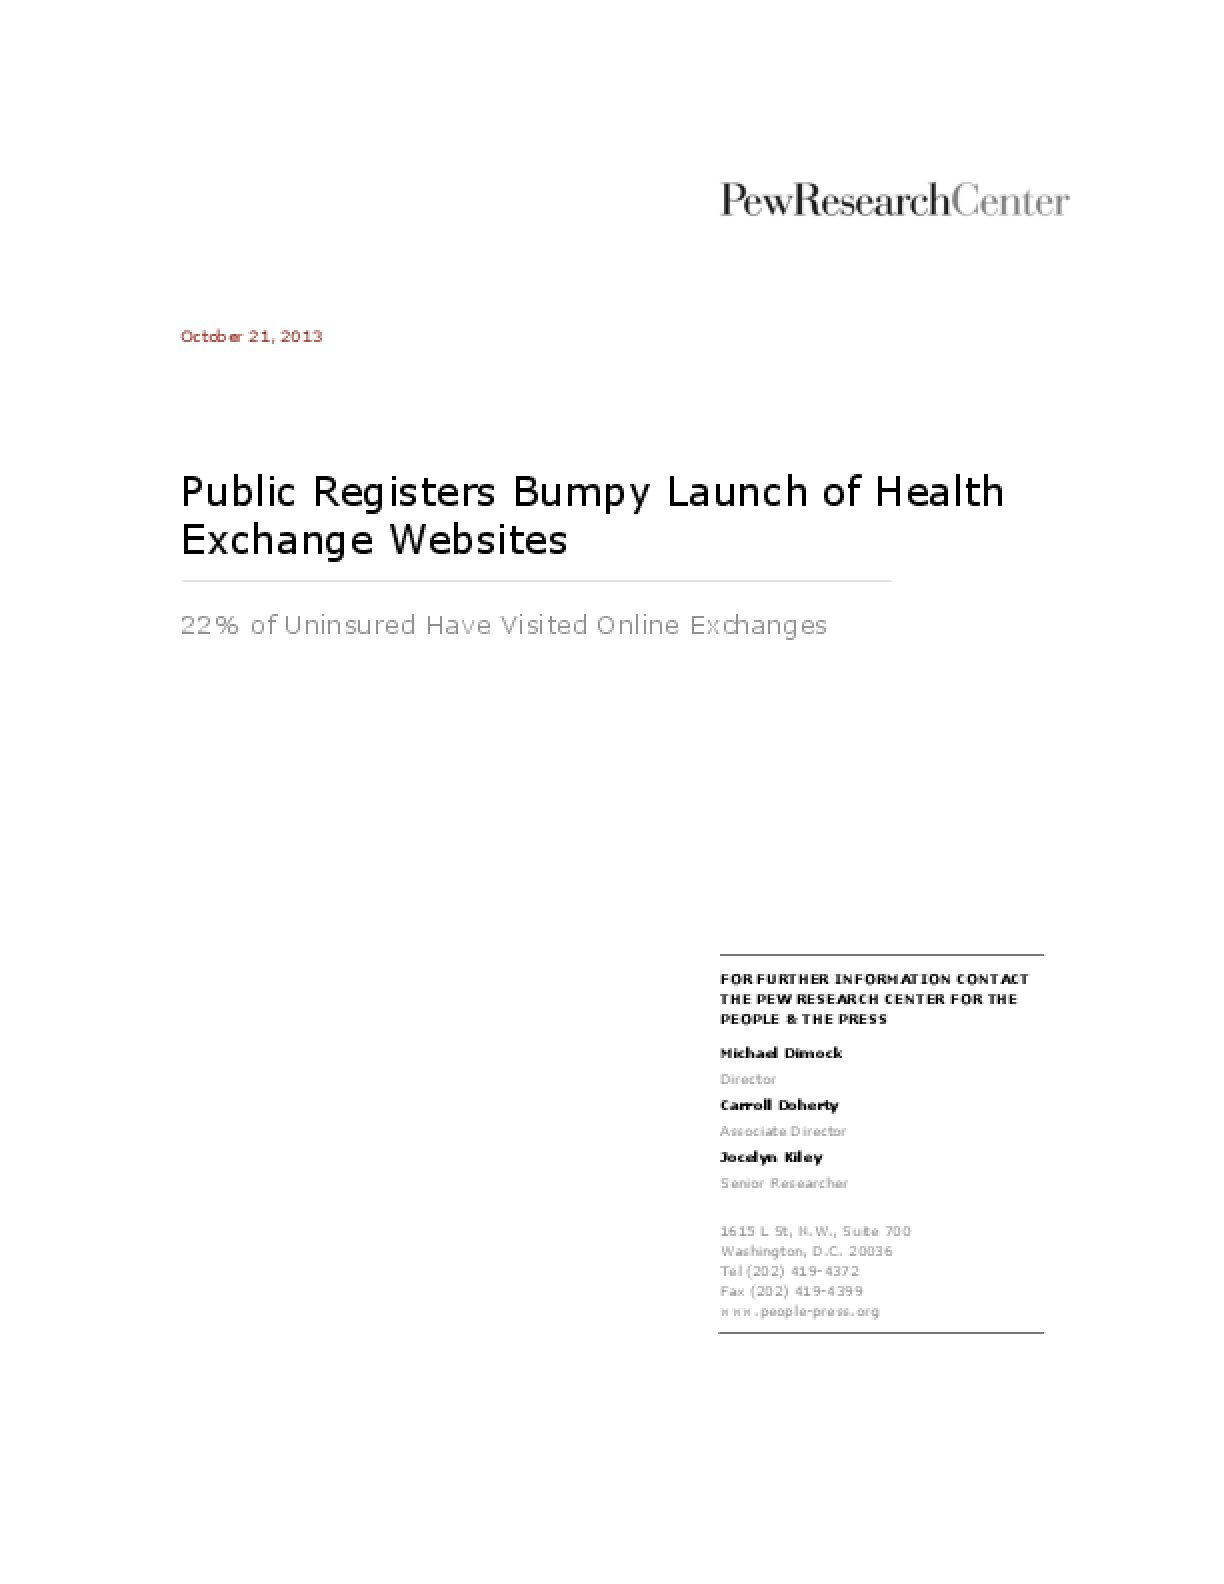 Public Registers Bumpy Launch of Health Exchange Websites